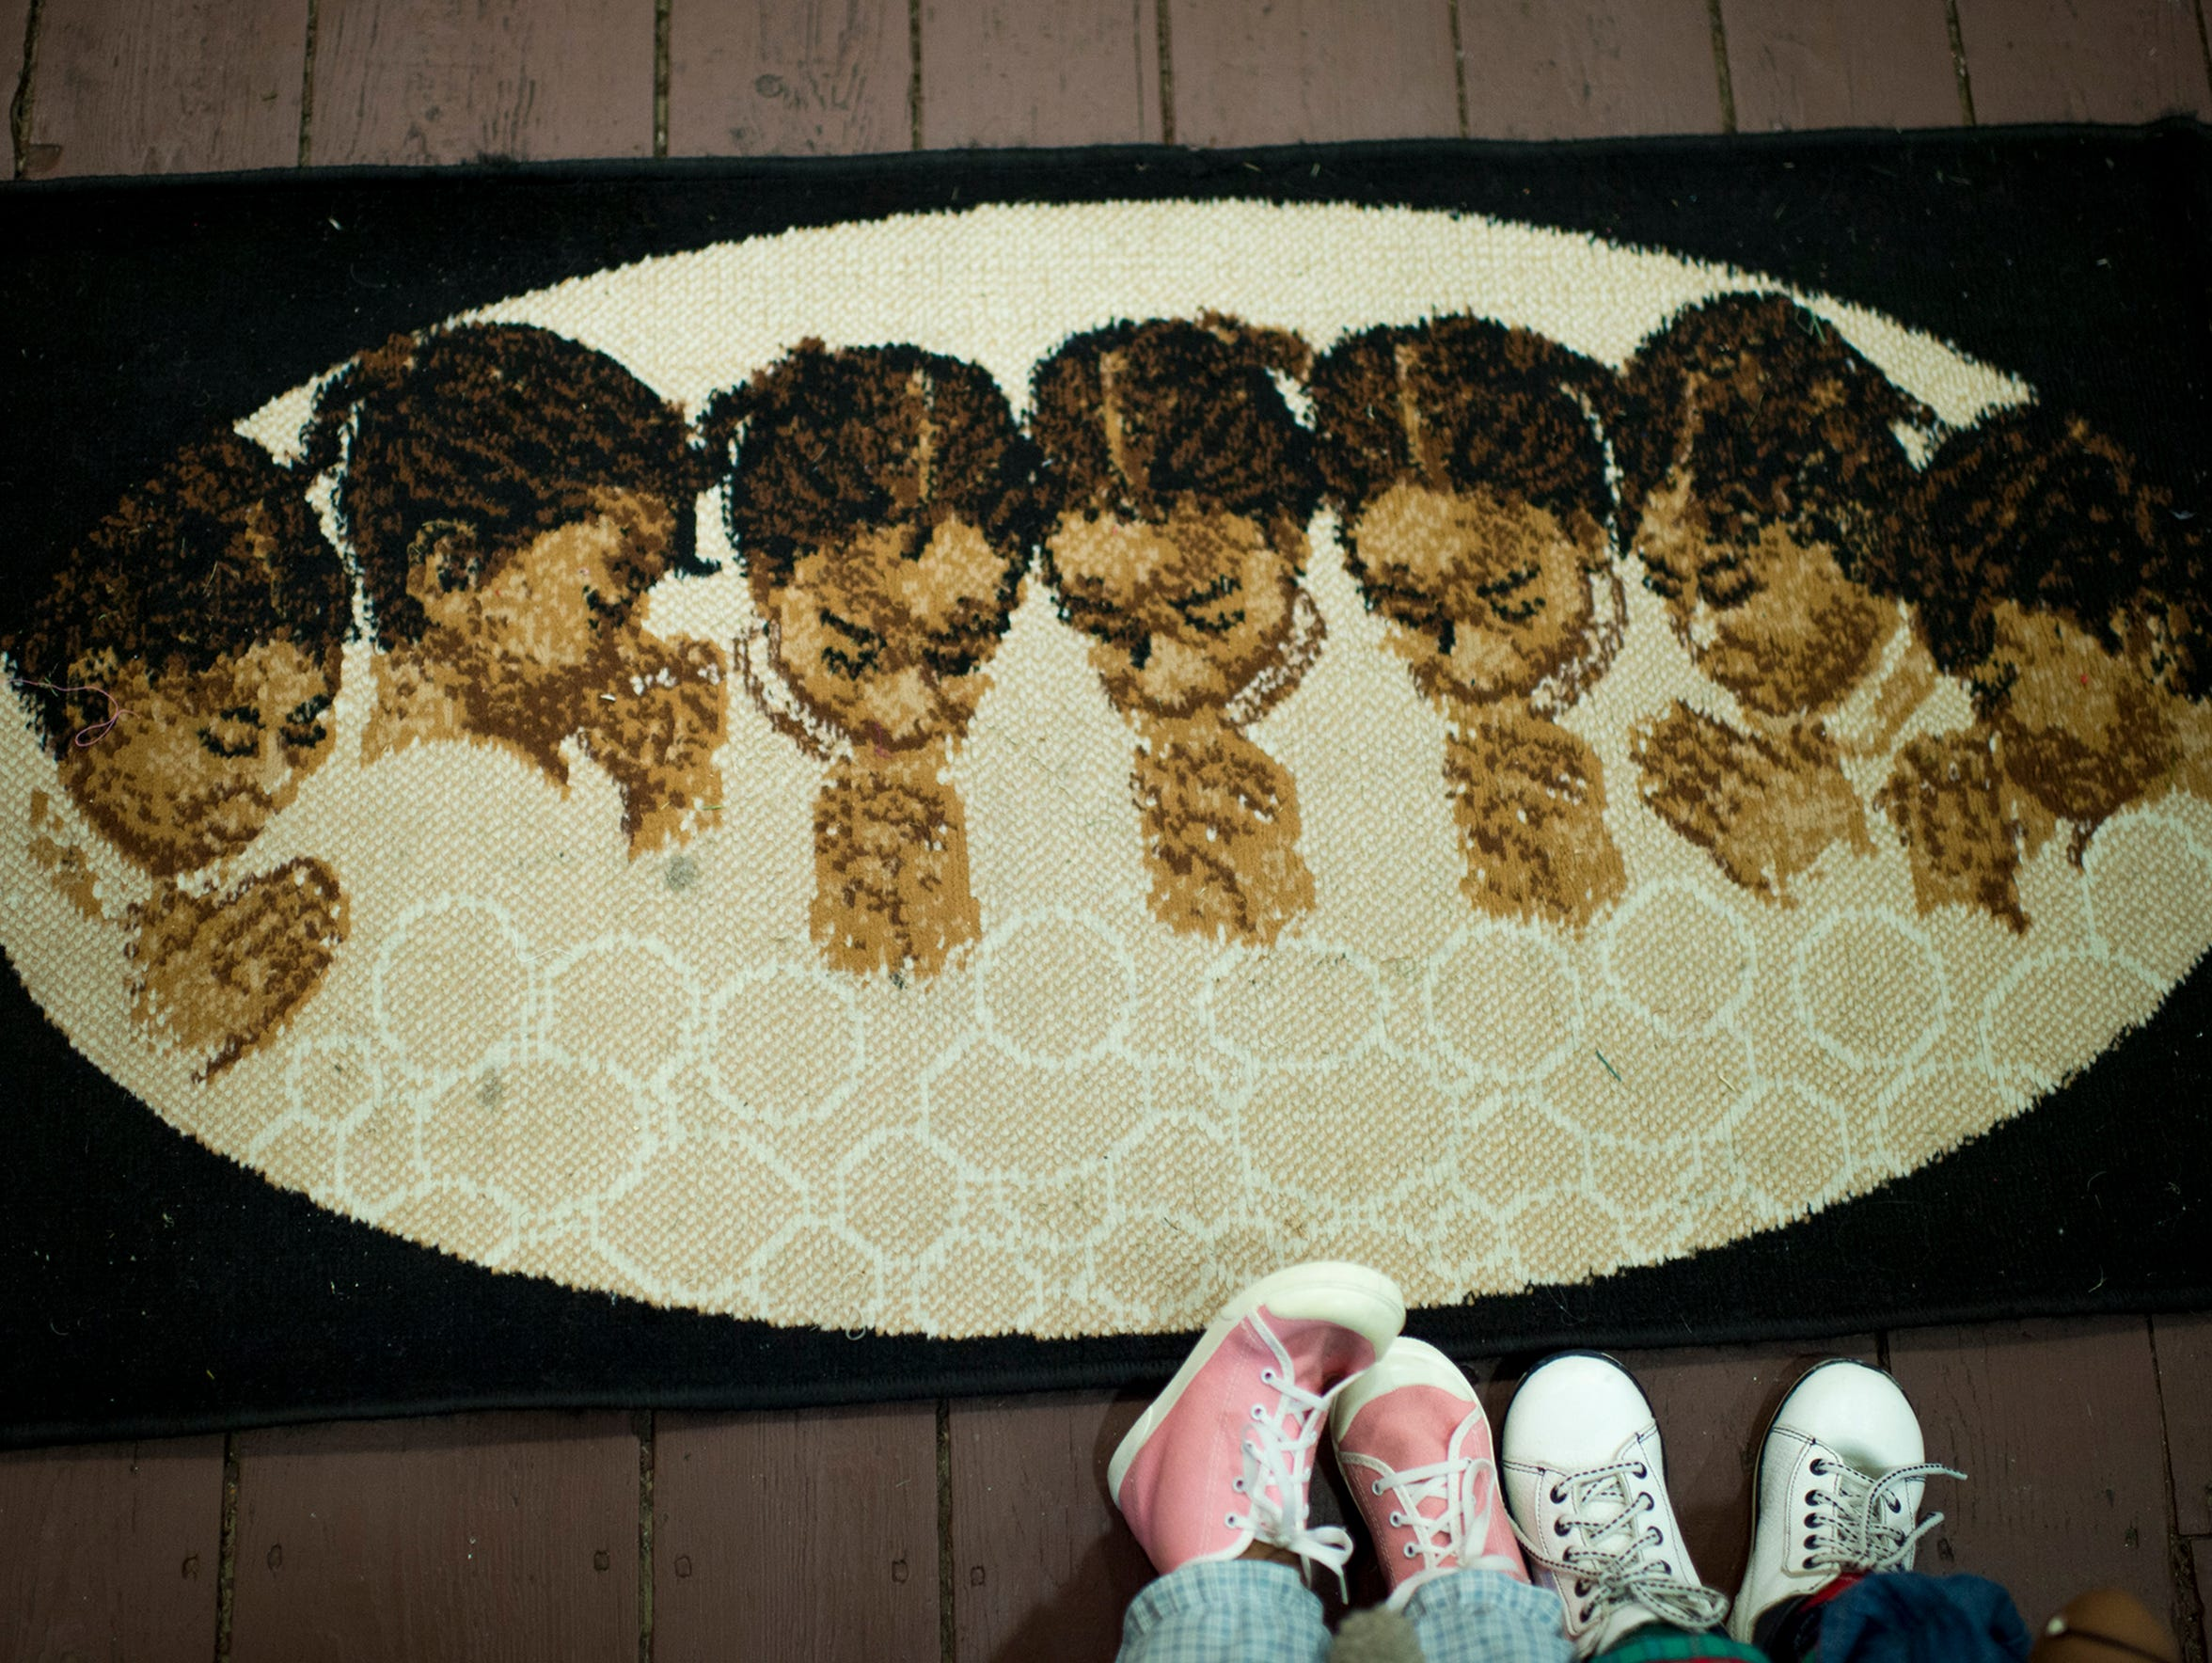 Dolls' feet are seen at the edge of a carpet inside